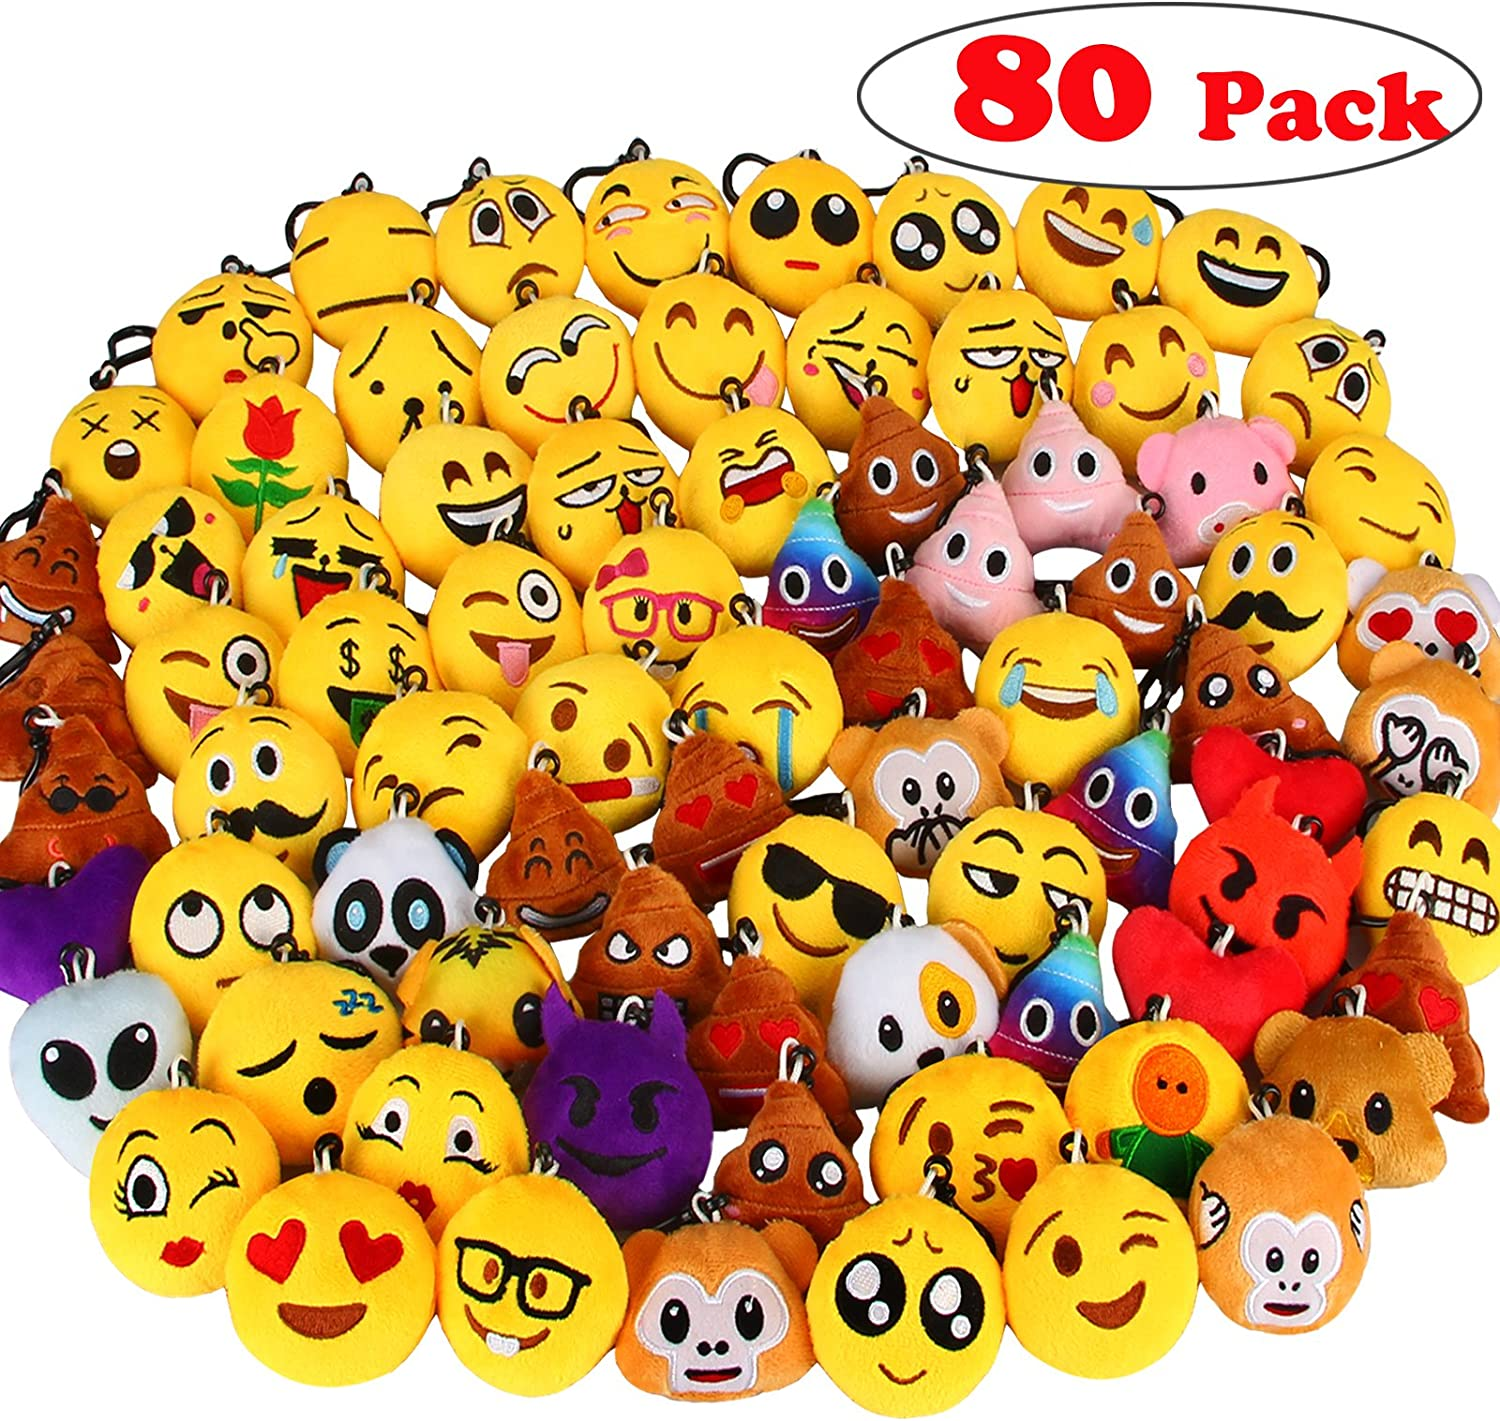 """Dreampark 80 Pack Mini Emotion Keychain Plush, Party Favors for Kids, Christmas / Birthday Party Supplies, Emoticon Gifts Toys Carnival Prizes for Kids 2"""" Set of 80"""